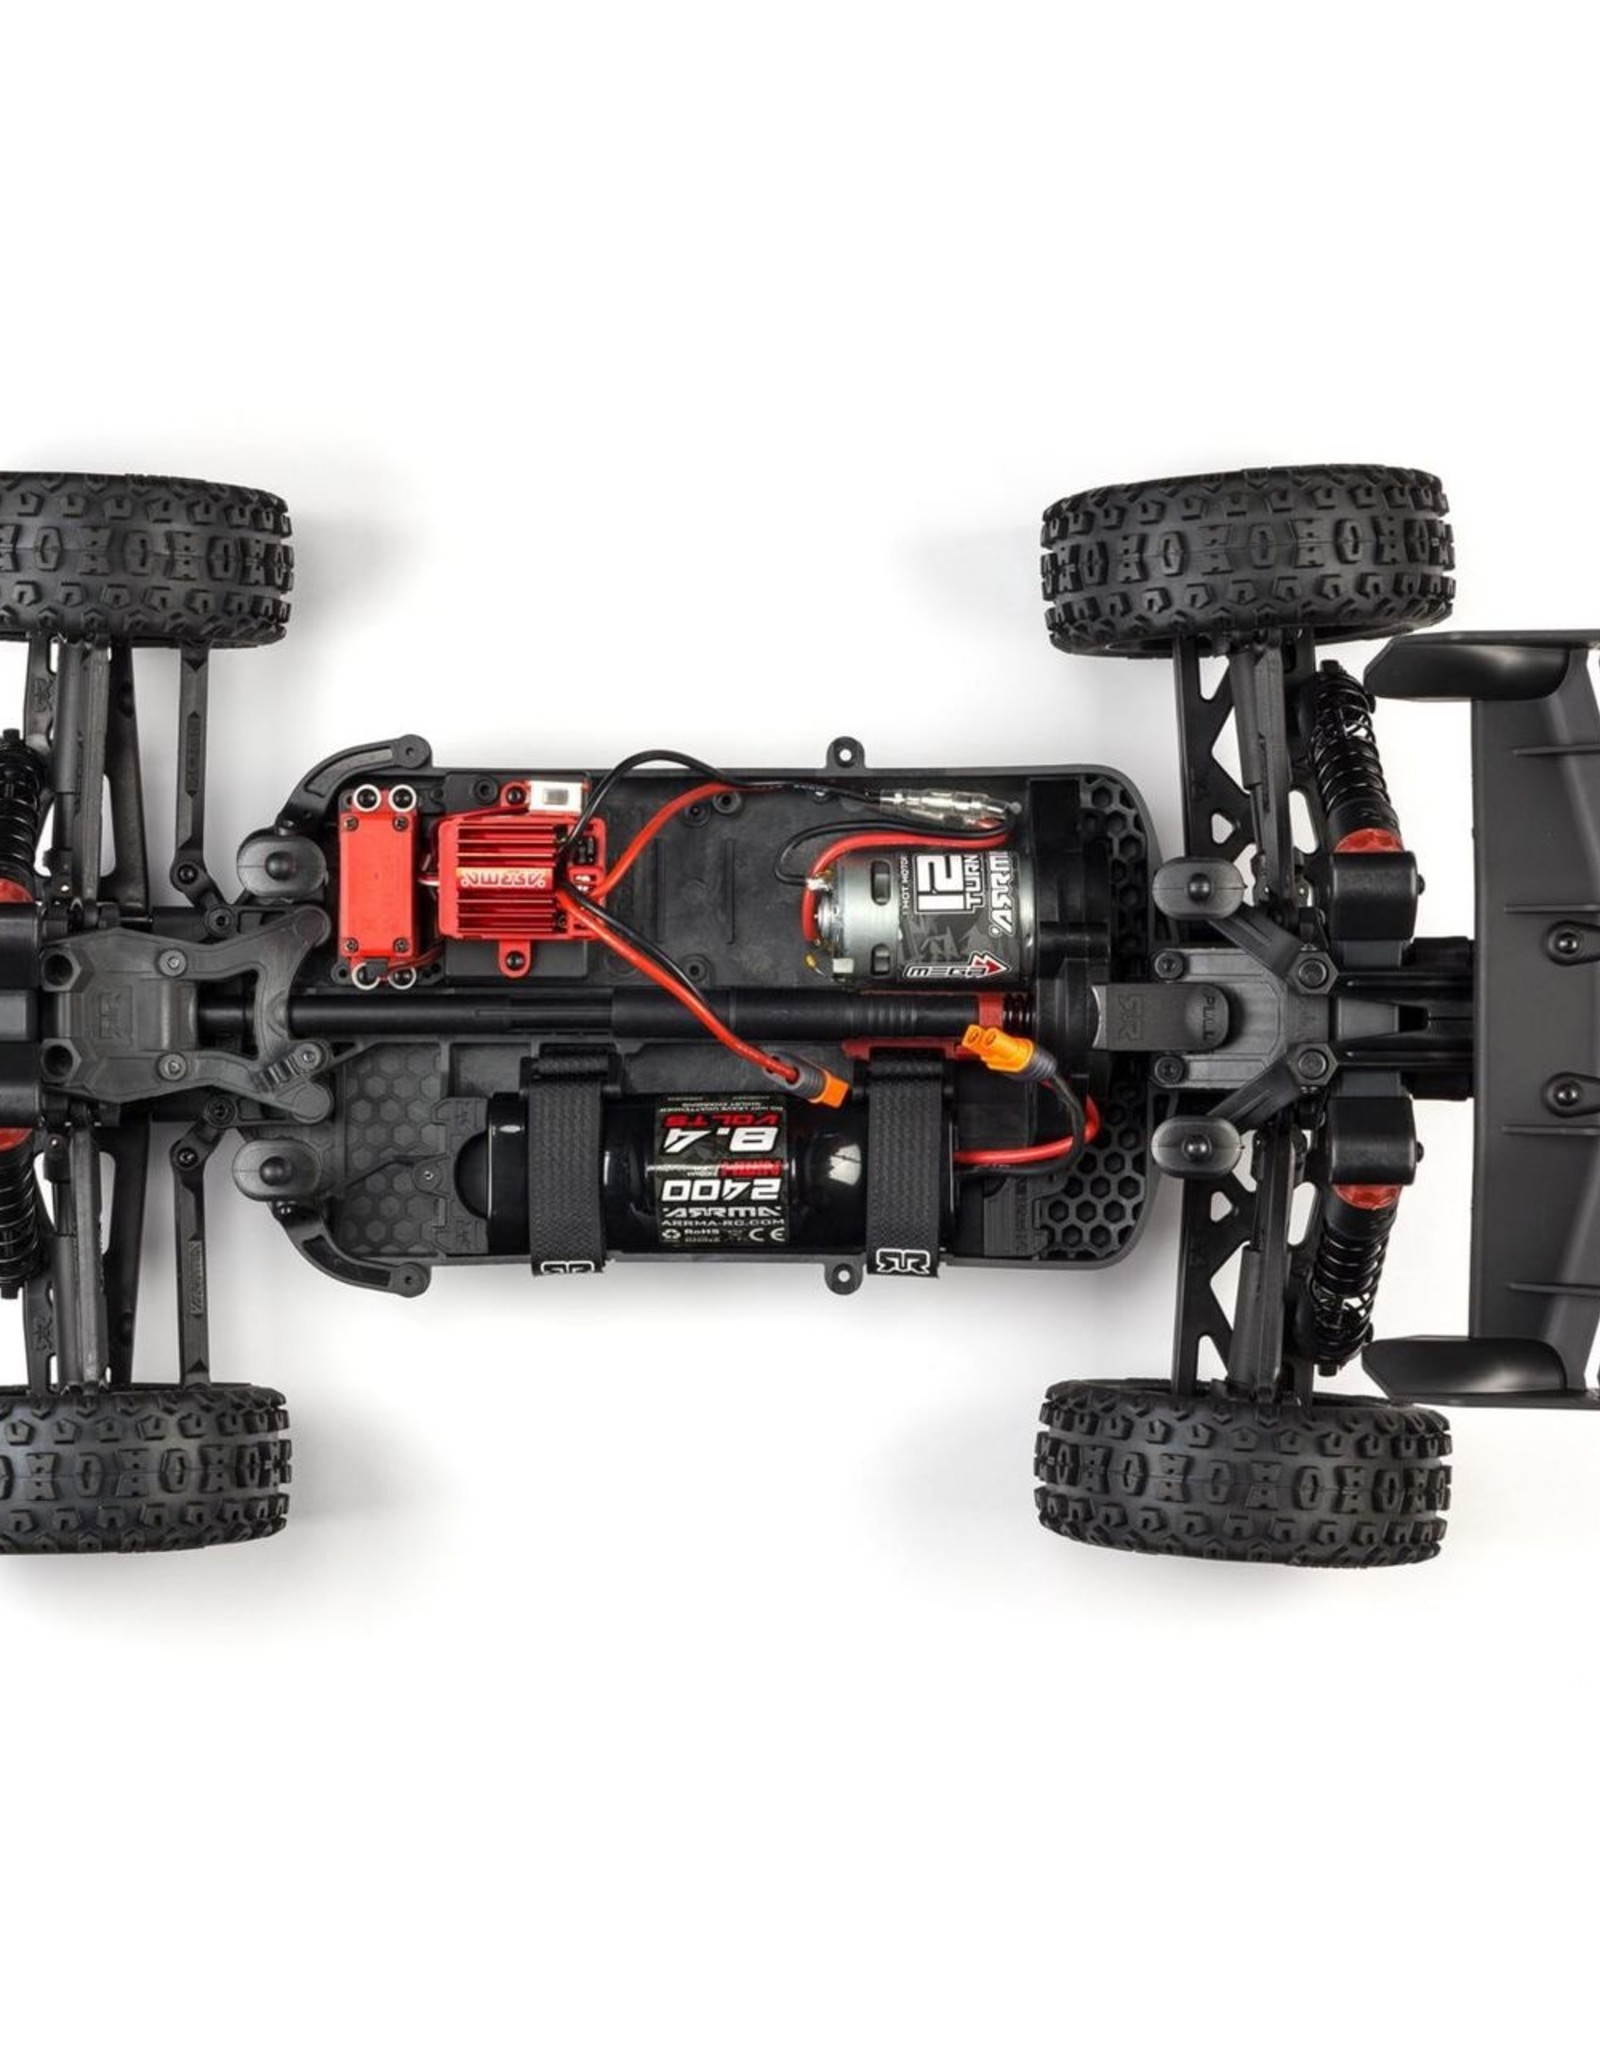 Arrma Arrma TYPHON 1/8-scale 550 Brushed 4X4 GRN